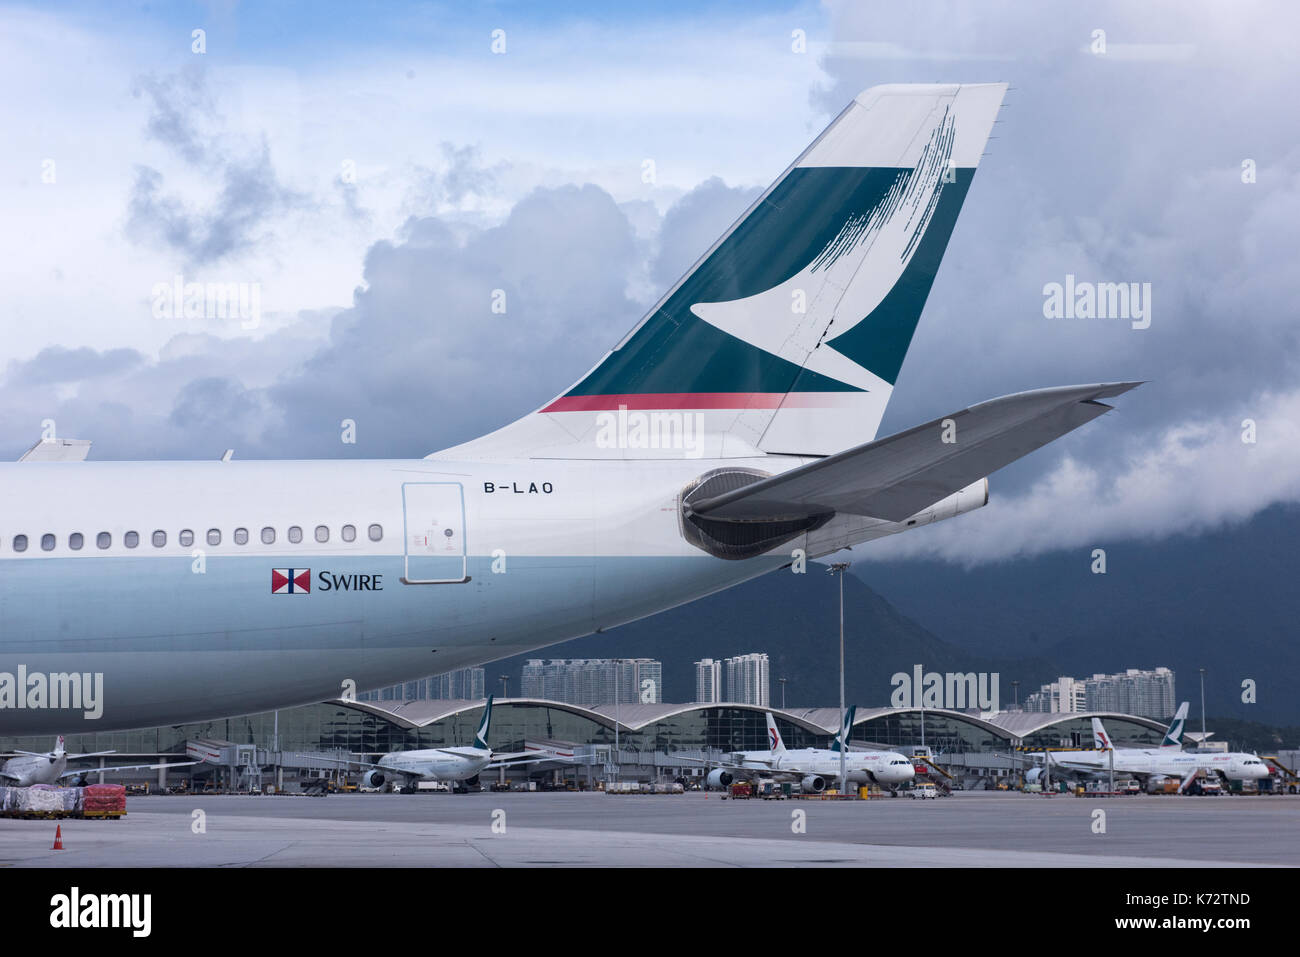 Cathay Pacific brushing logo on the tail of a plane on the tarmac,Hong Kong International Airport Check Lap Kok. Jayne Russell/Alamy Stock Photo - Stock Image